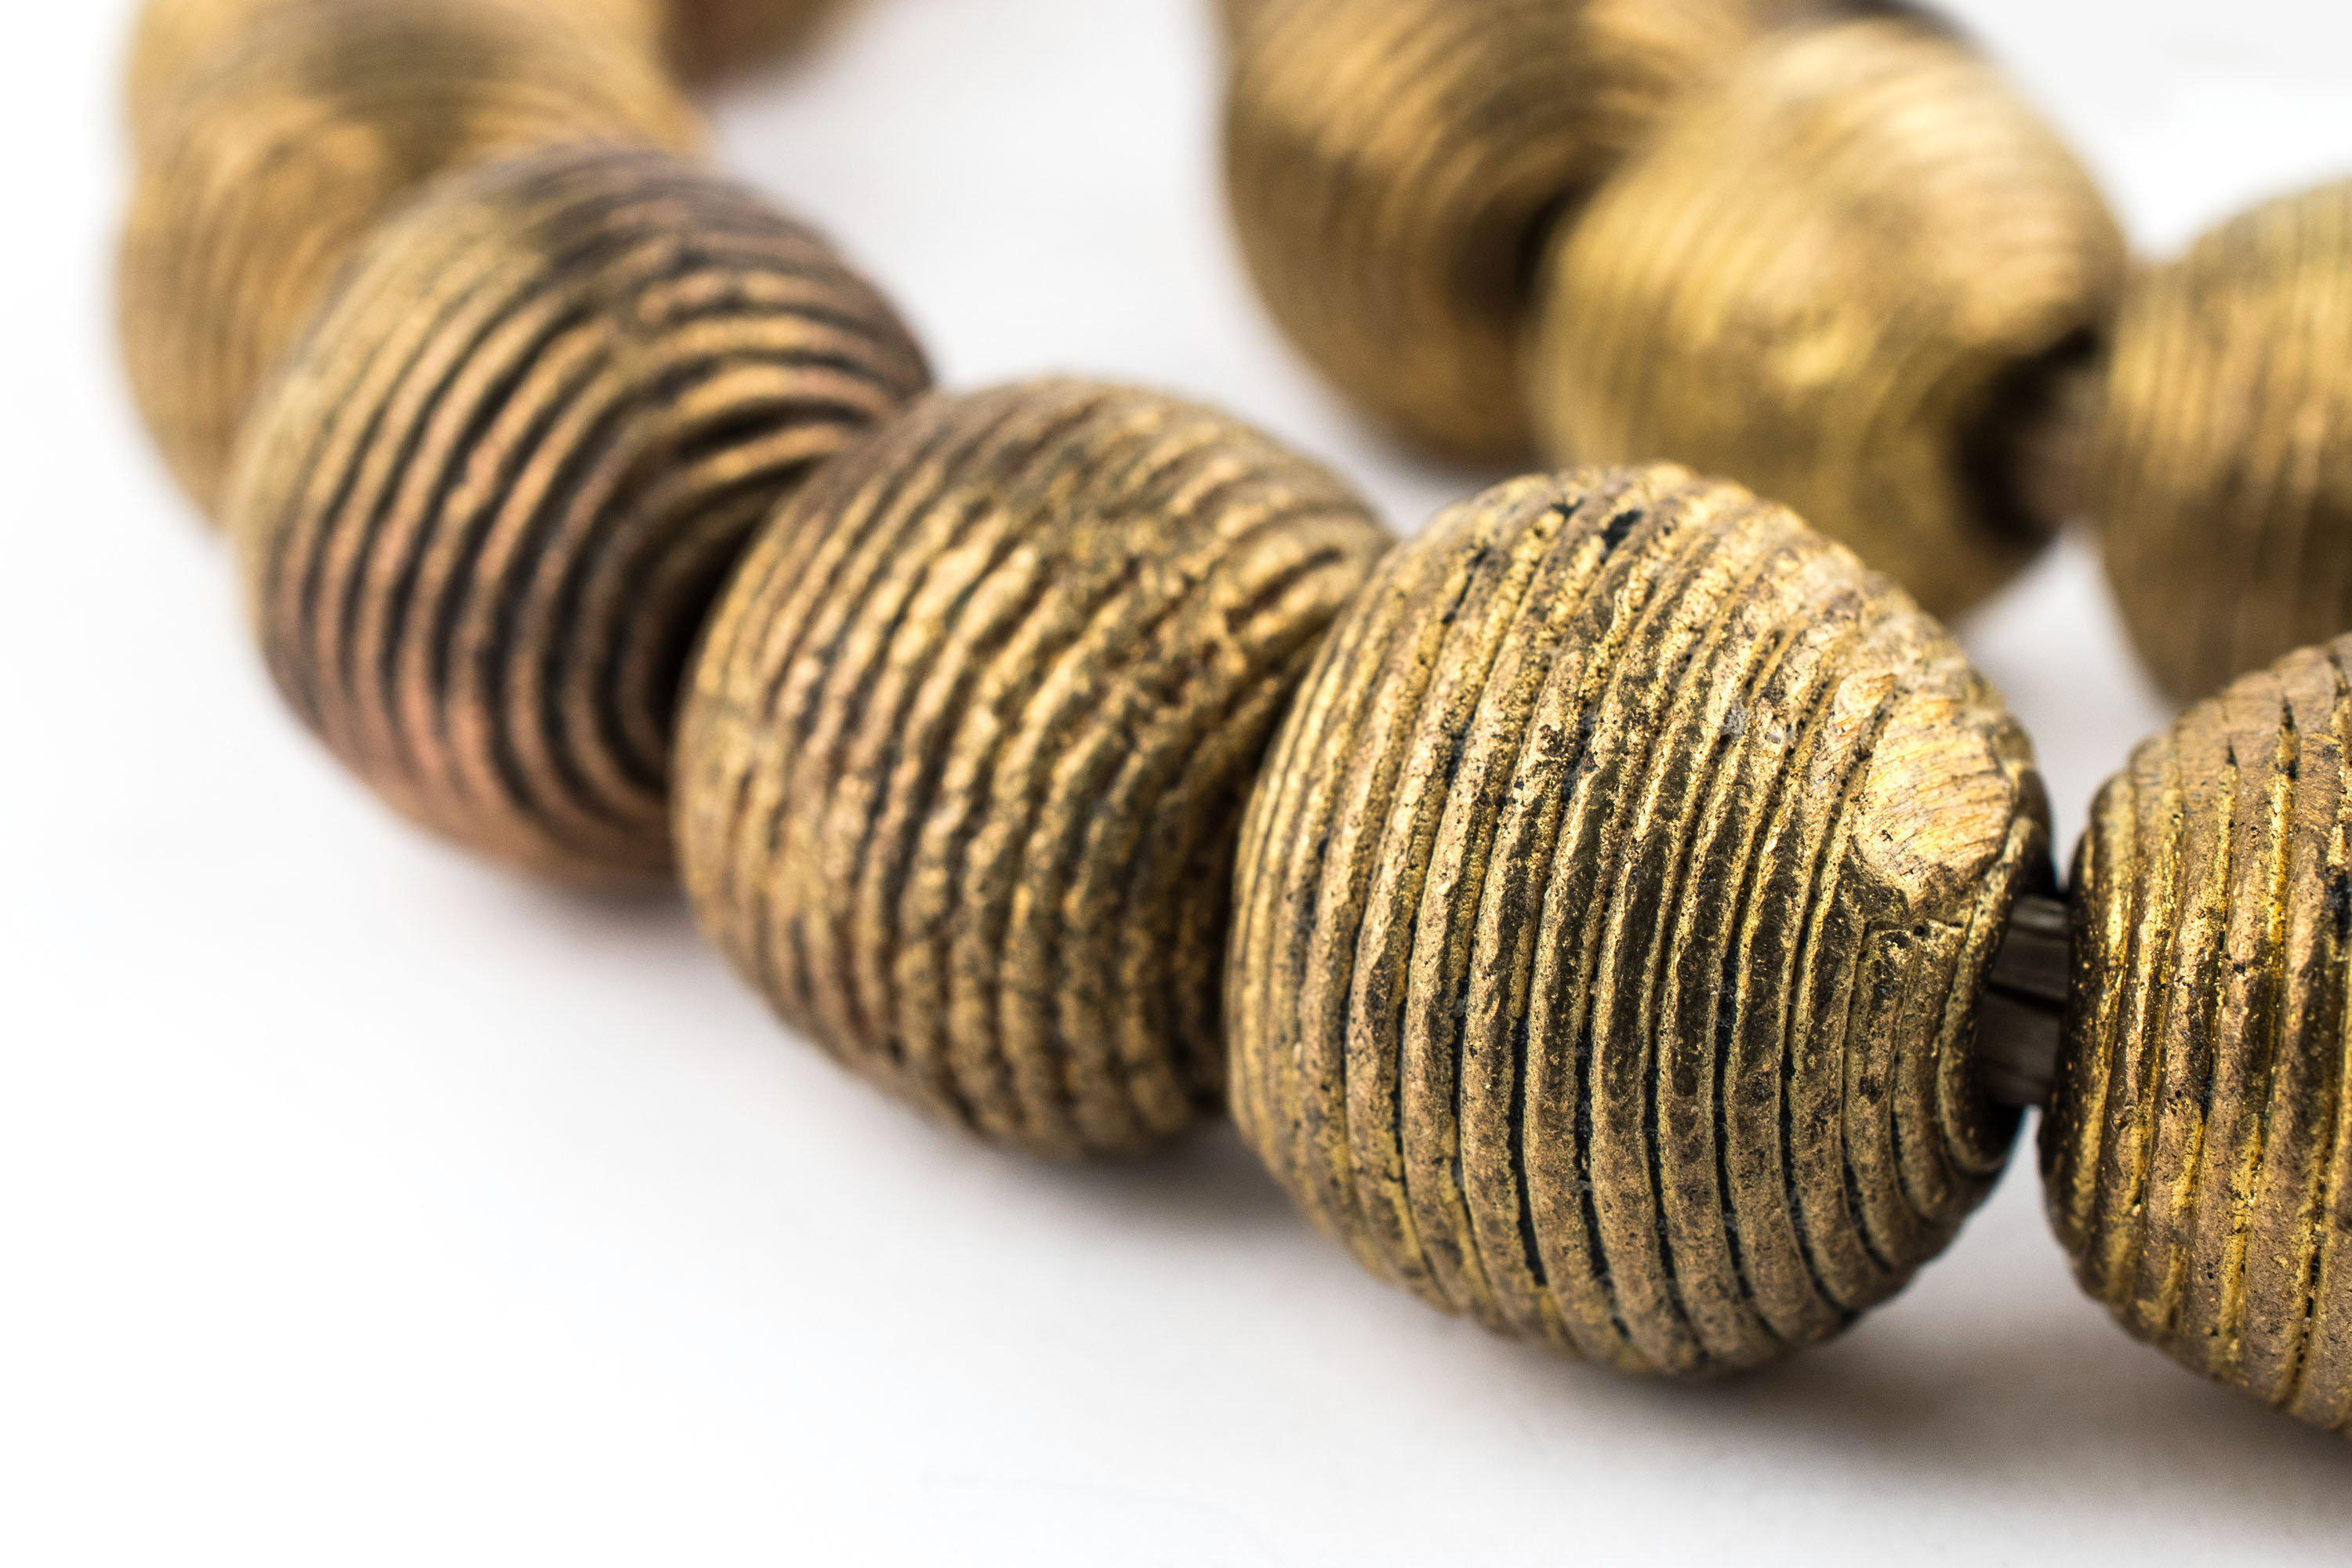 Wound Round Brass Beads 17mm Ghana African Large Hole 25